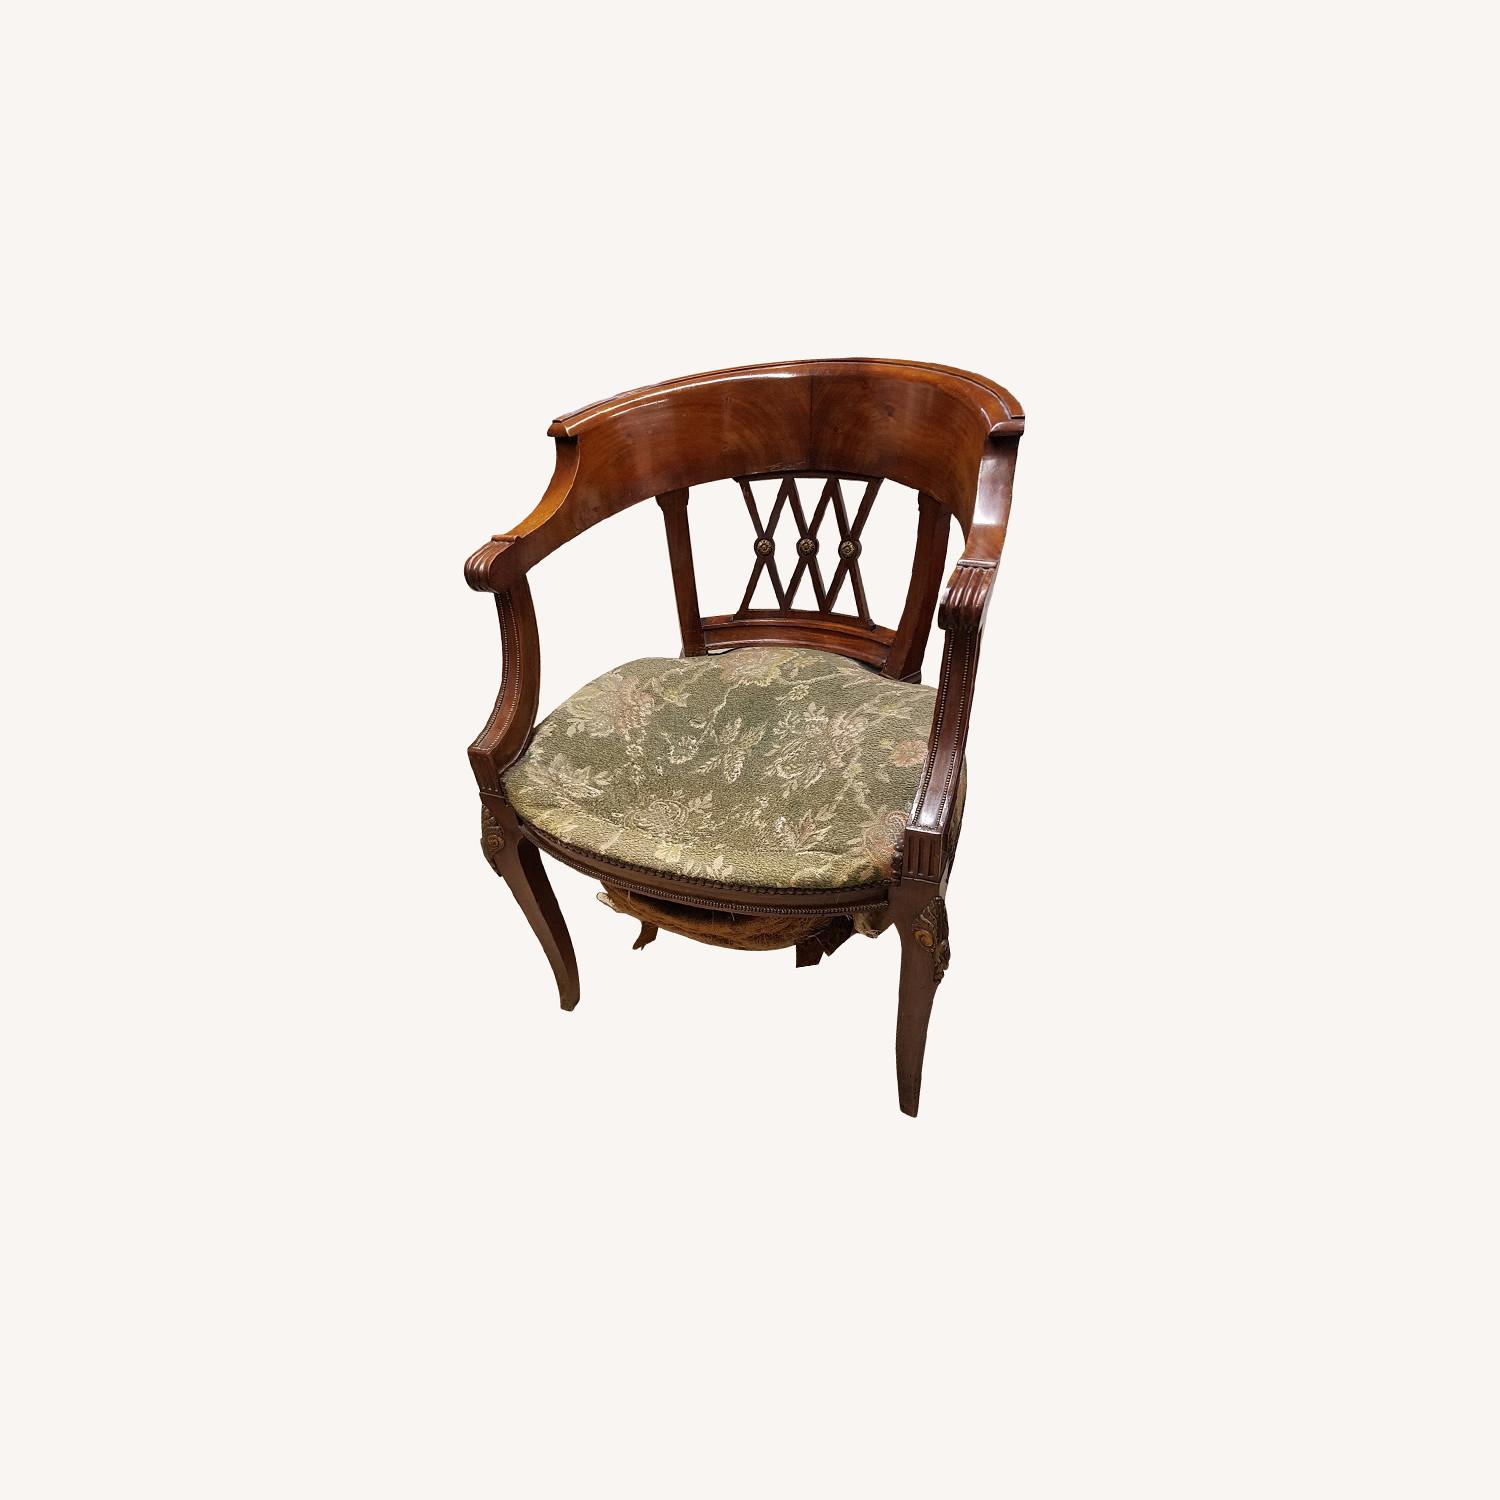 Solid Mhagony Harm Chair - image-0